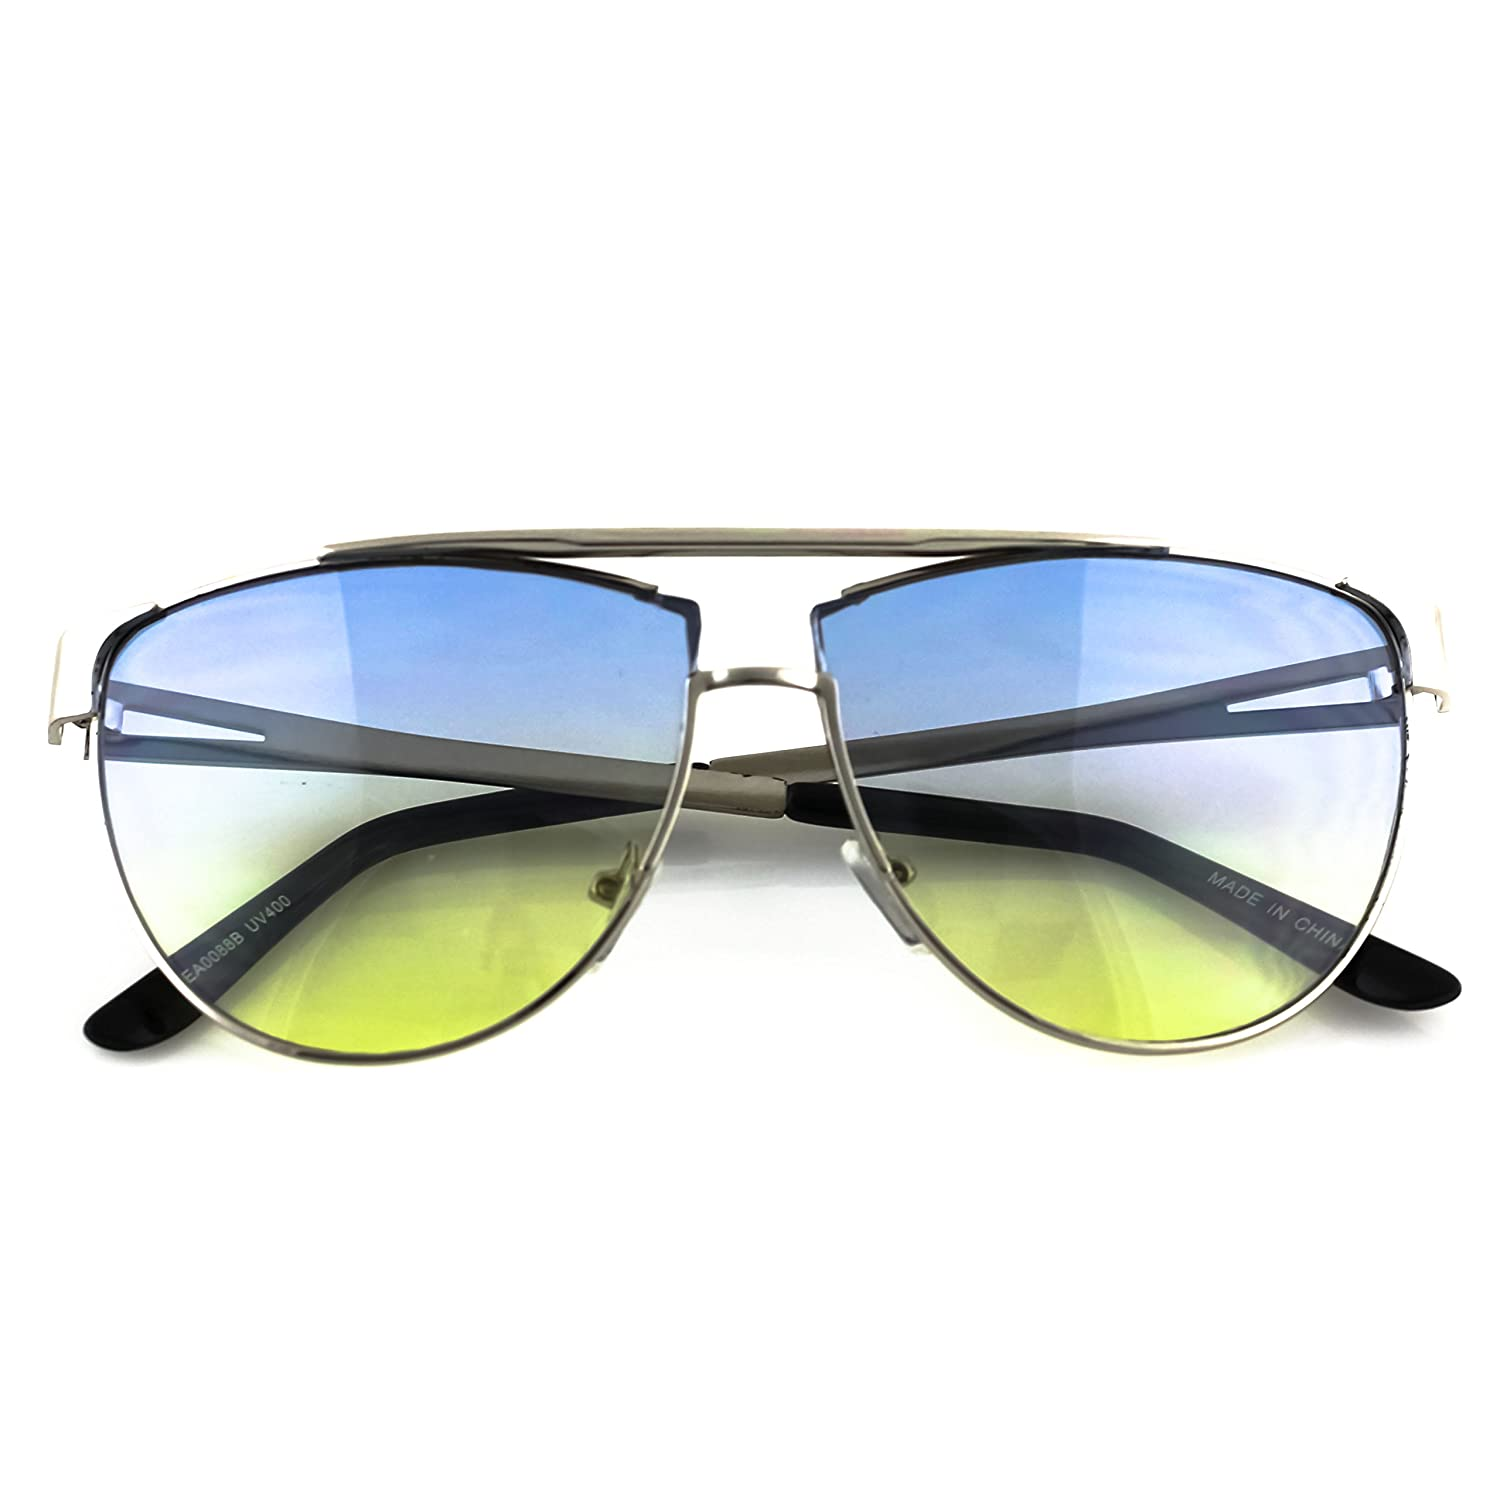 Elite FLAT TOP Aviator Multicolored Groovy Gradient Metal Frame Men Women Retro Sunglasses